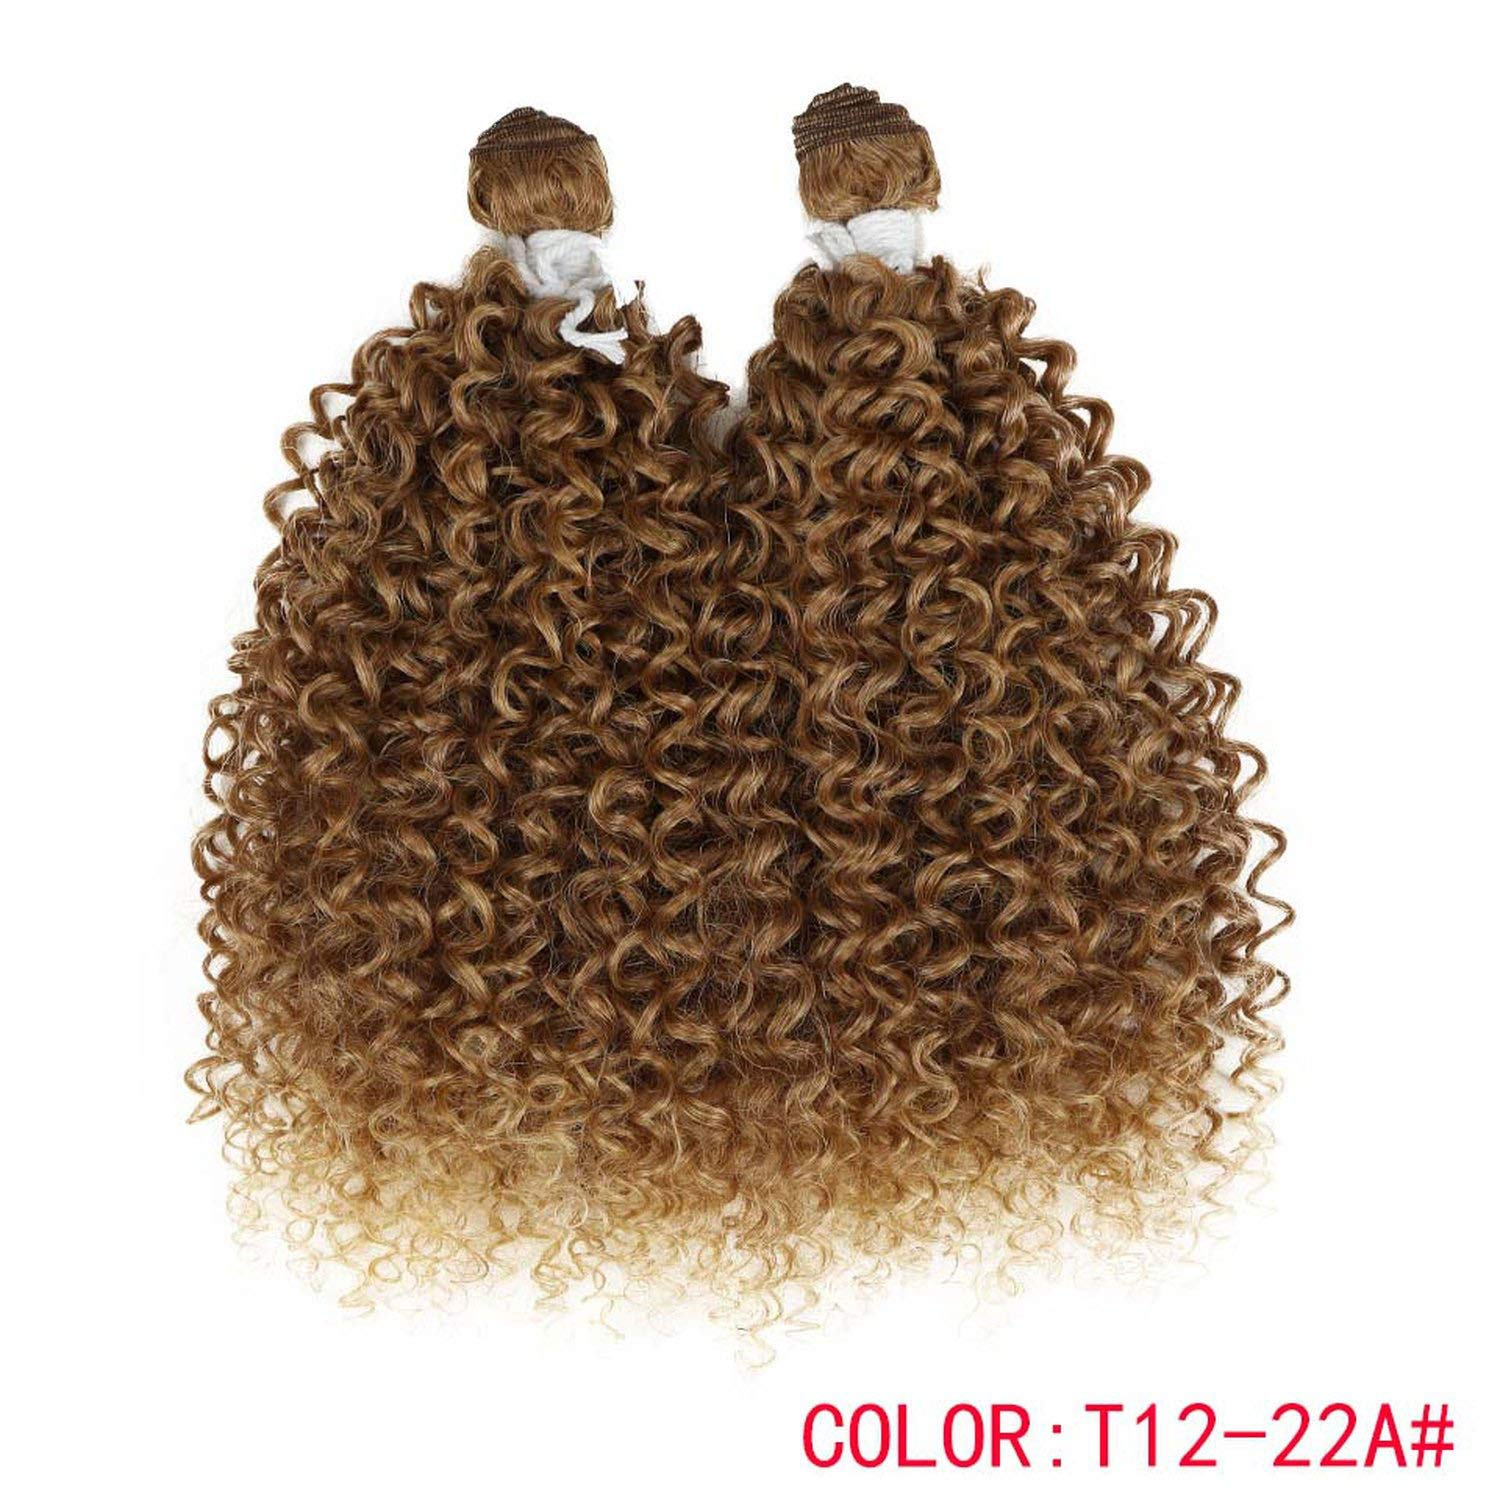 24''inch 2pcs/pack Curly Hair Weaving Kinky Curly Hair Extensions Weft Synthetic Hair Weave Bundles For Black Women,T12-22A,24inches by Ting room